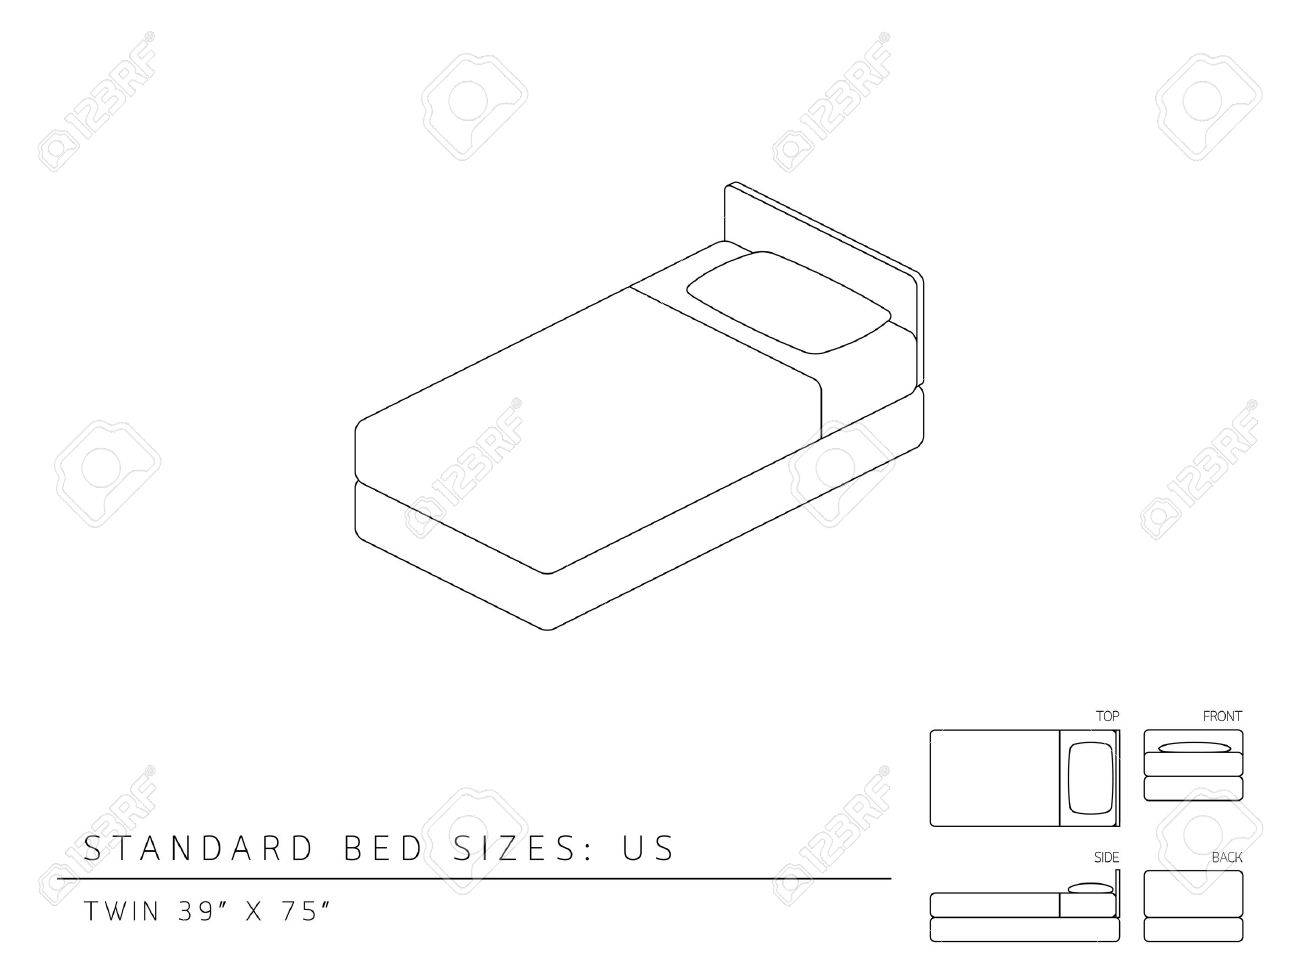 Twin bed front view